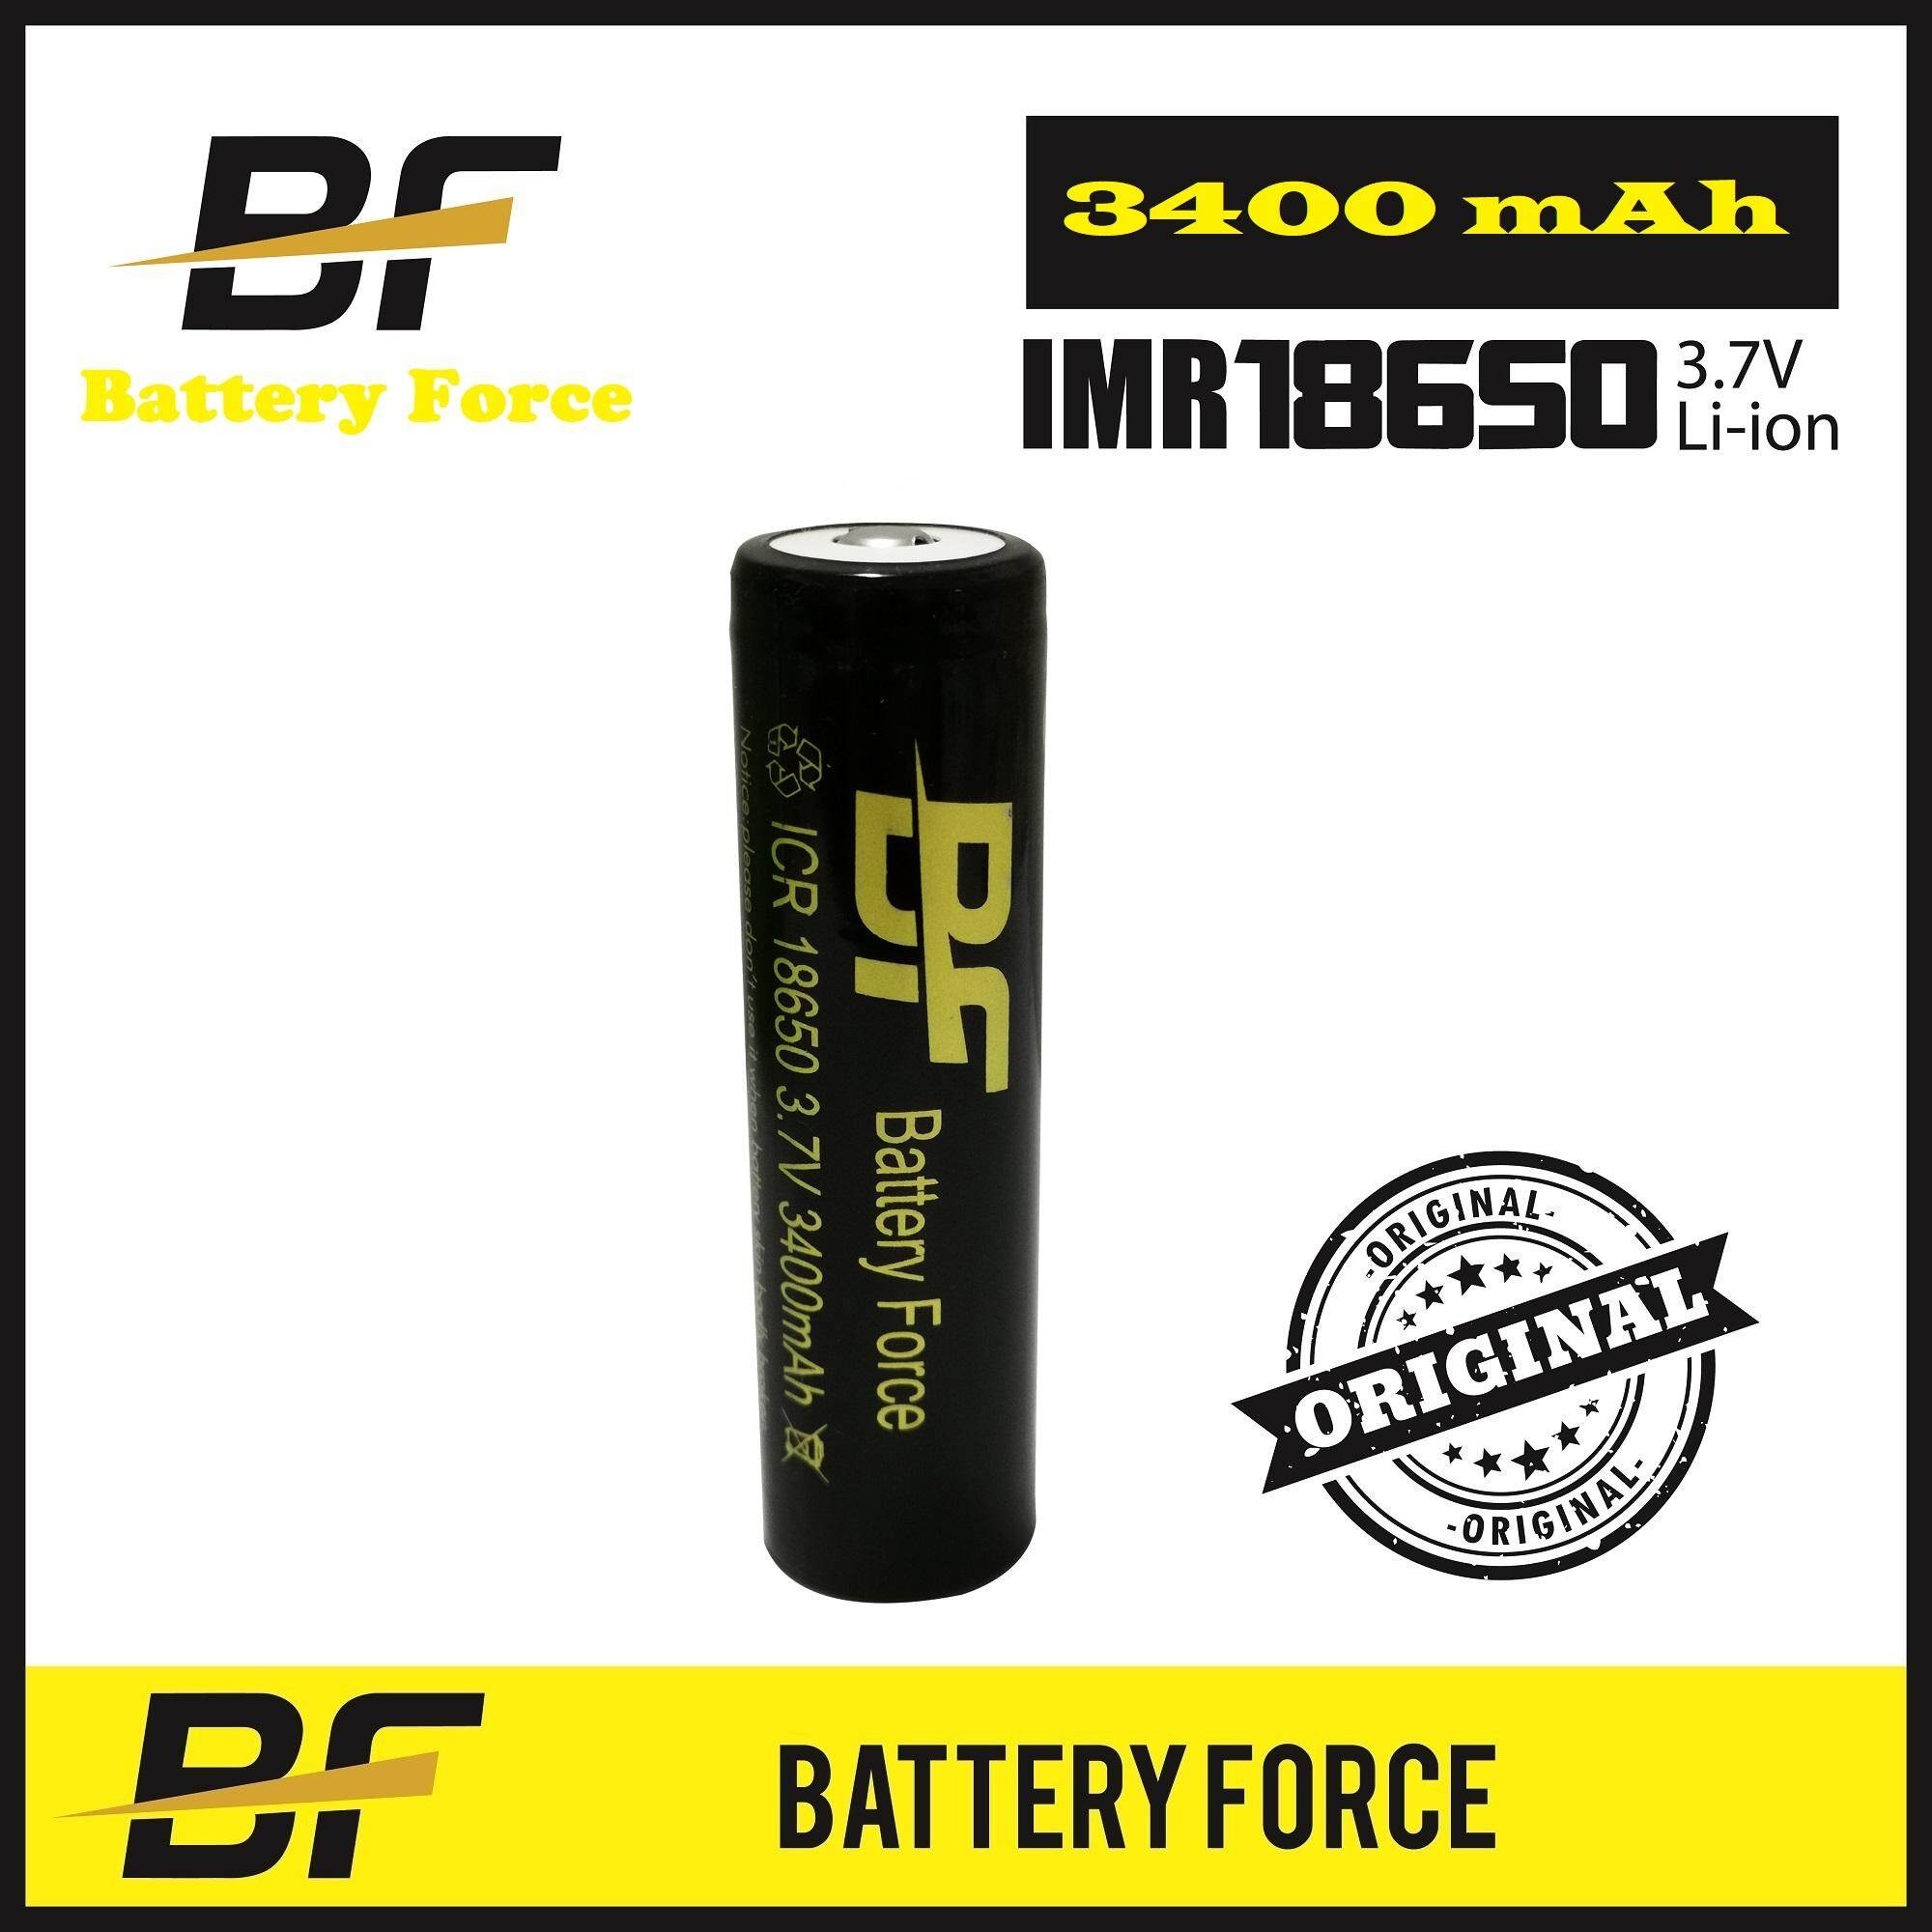 3.7V 18650 3400mAH Battery Force Original Button Top Rechargeable Lithium Ion Battery ICR